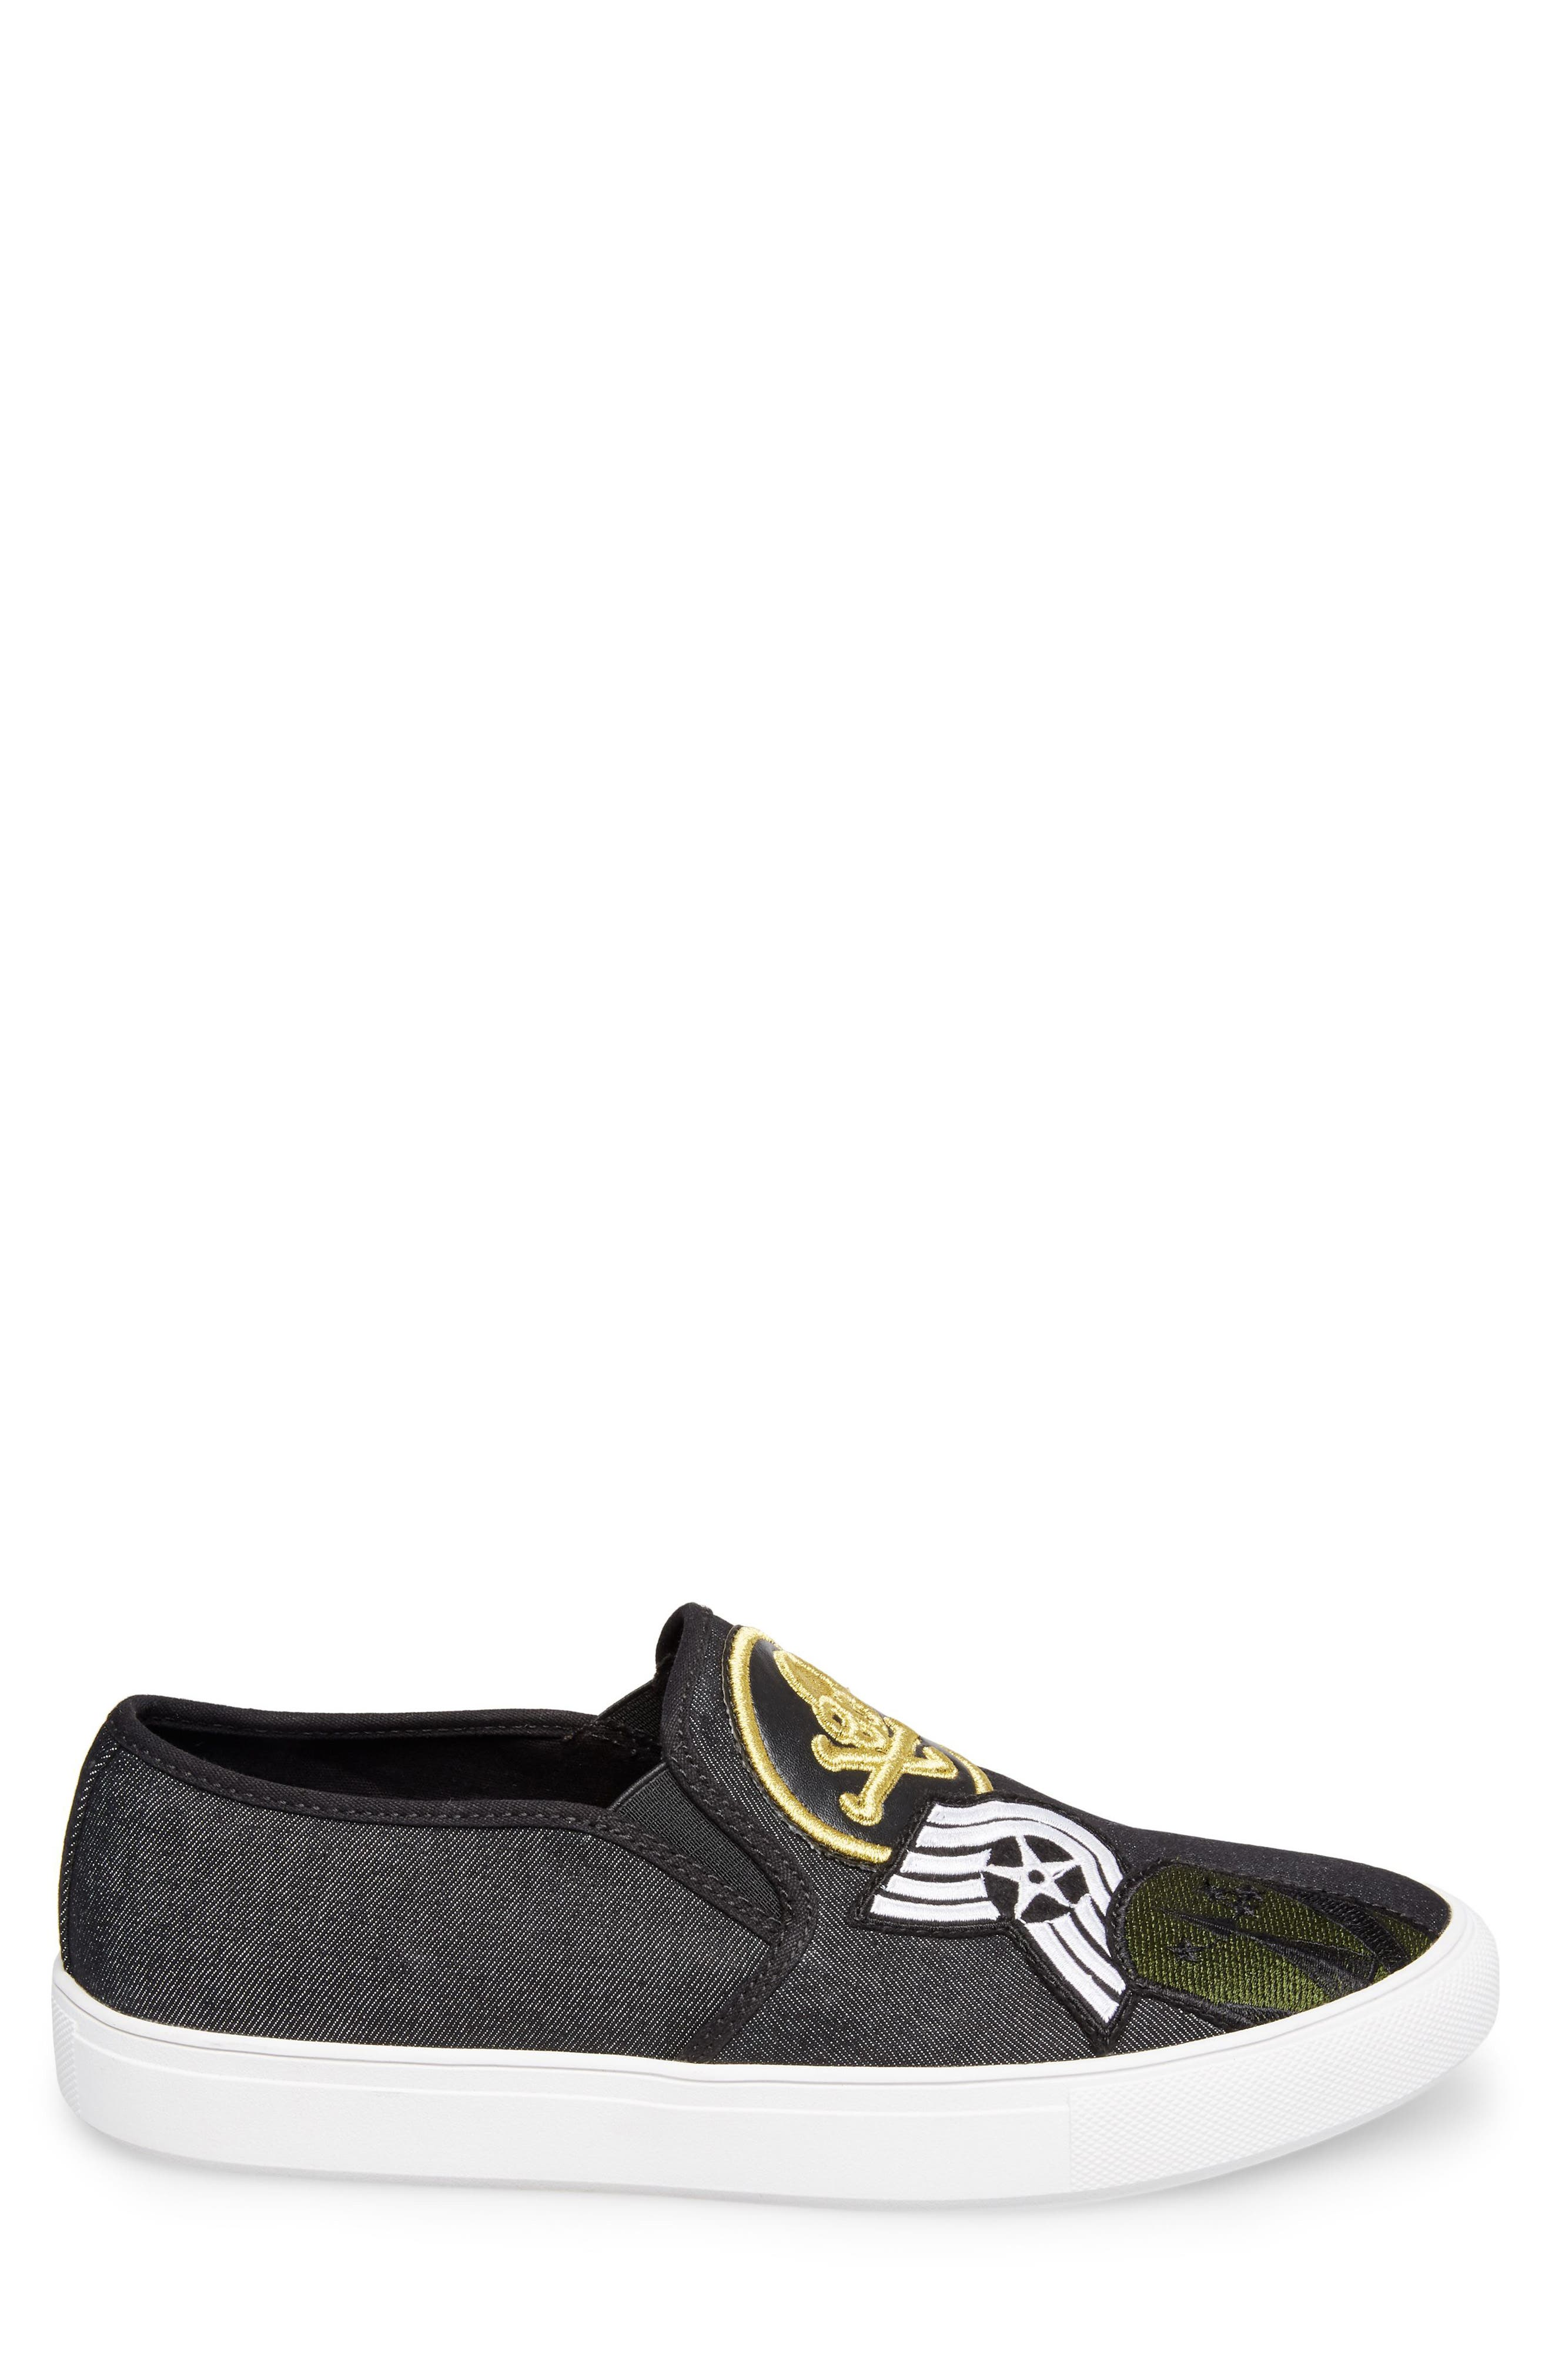 Alternate Image 3  - Steve Madden Wasdin Slip-On (Men)